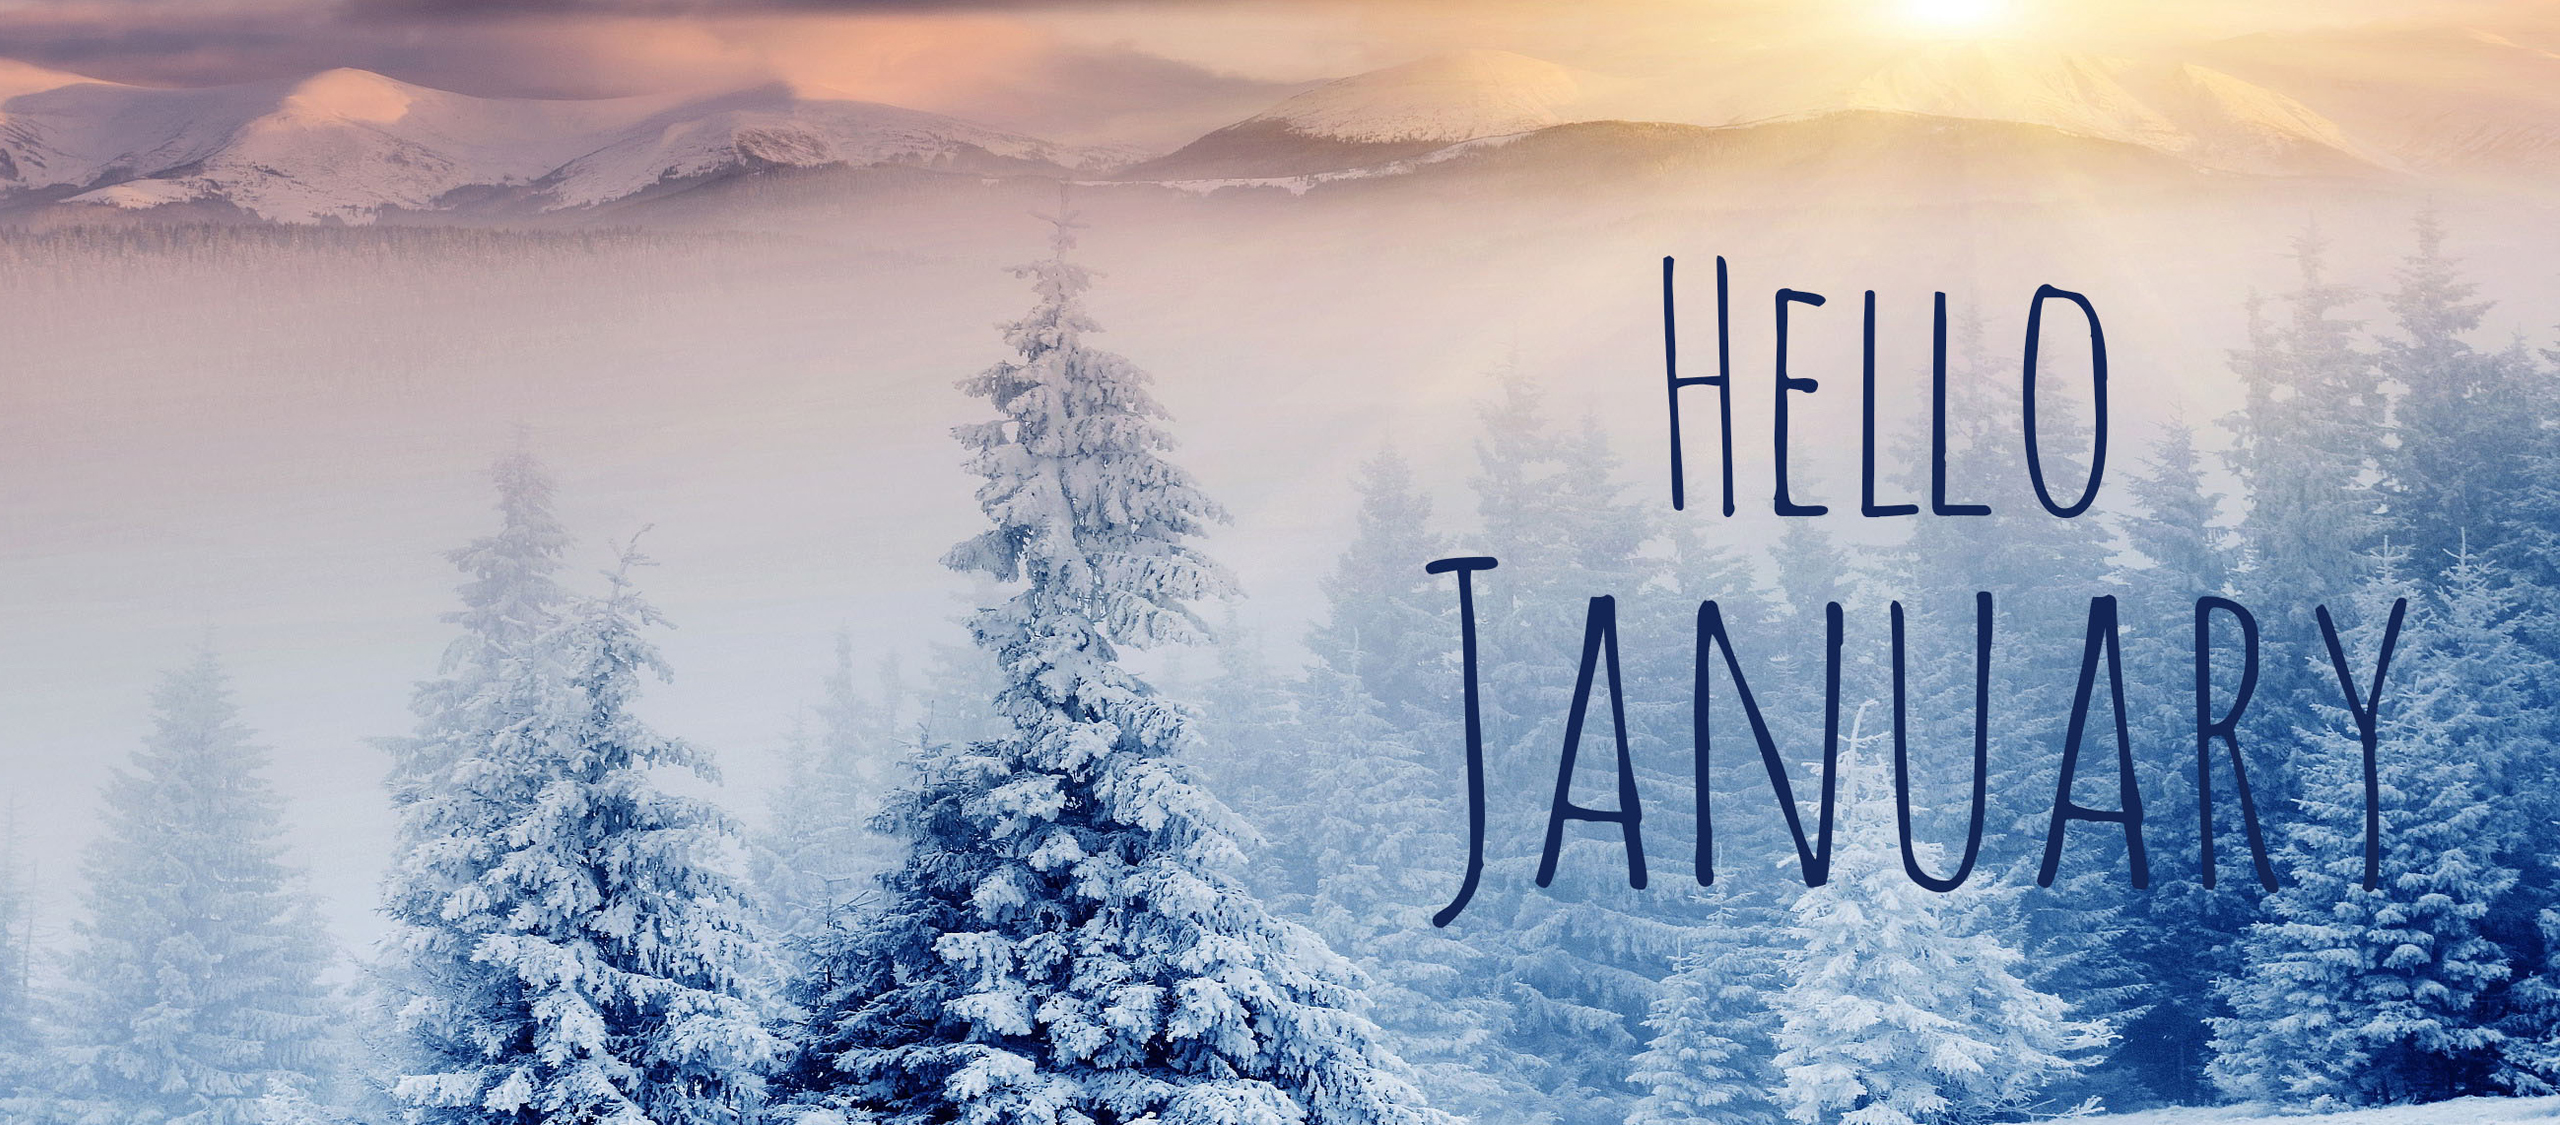 Hello January Wallpaper Images